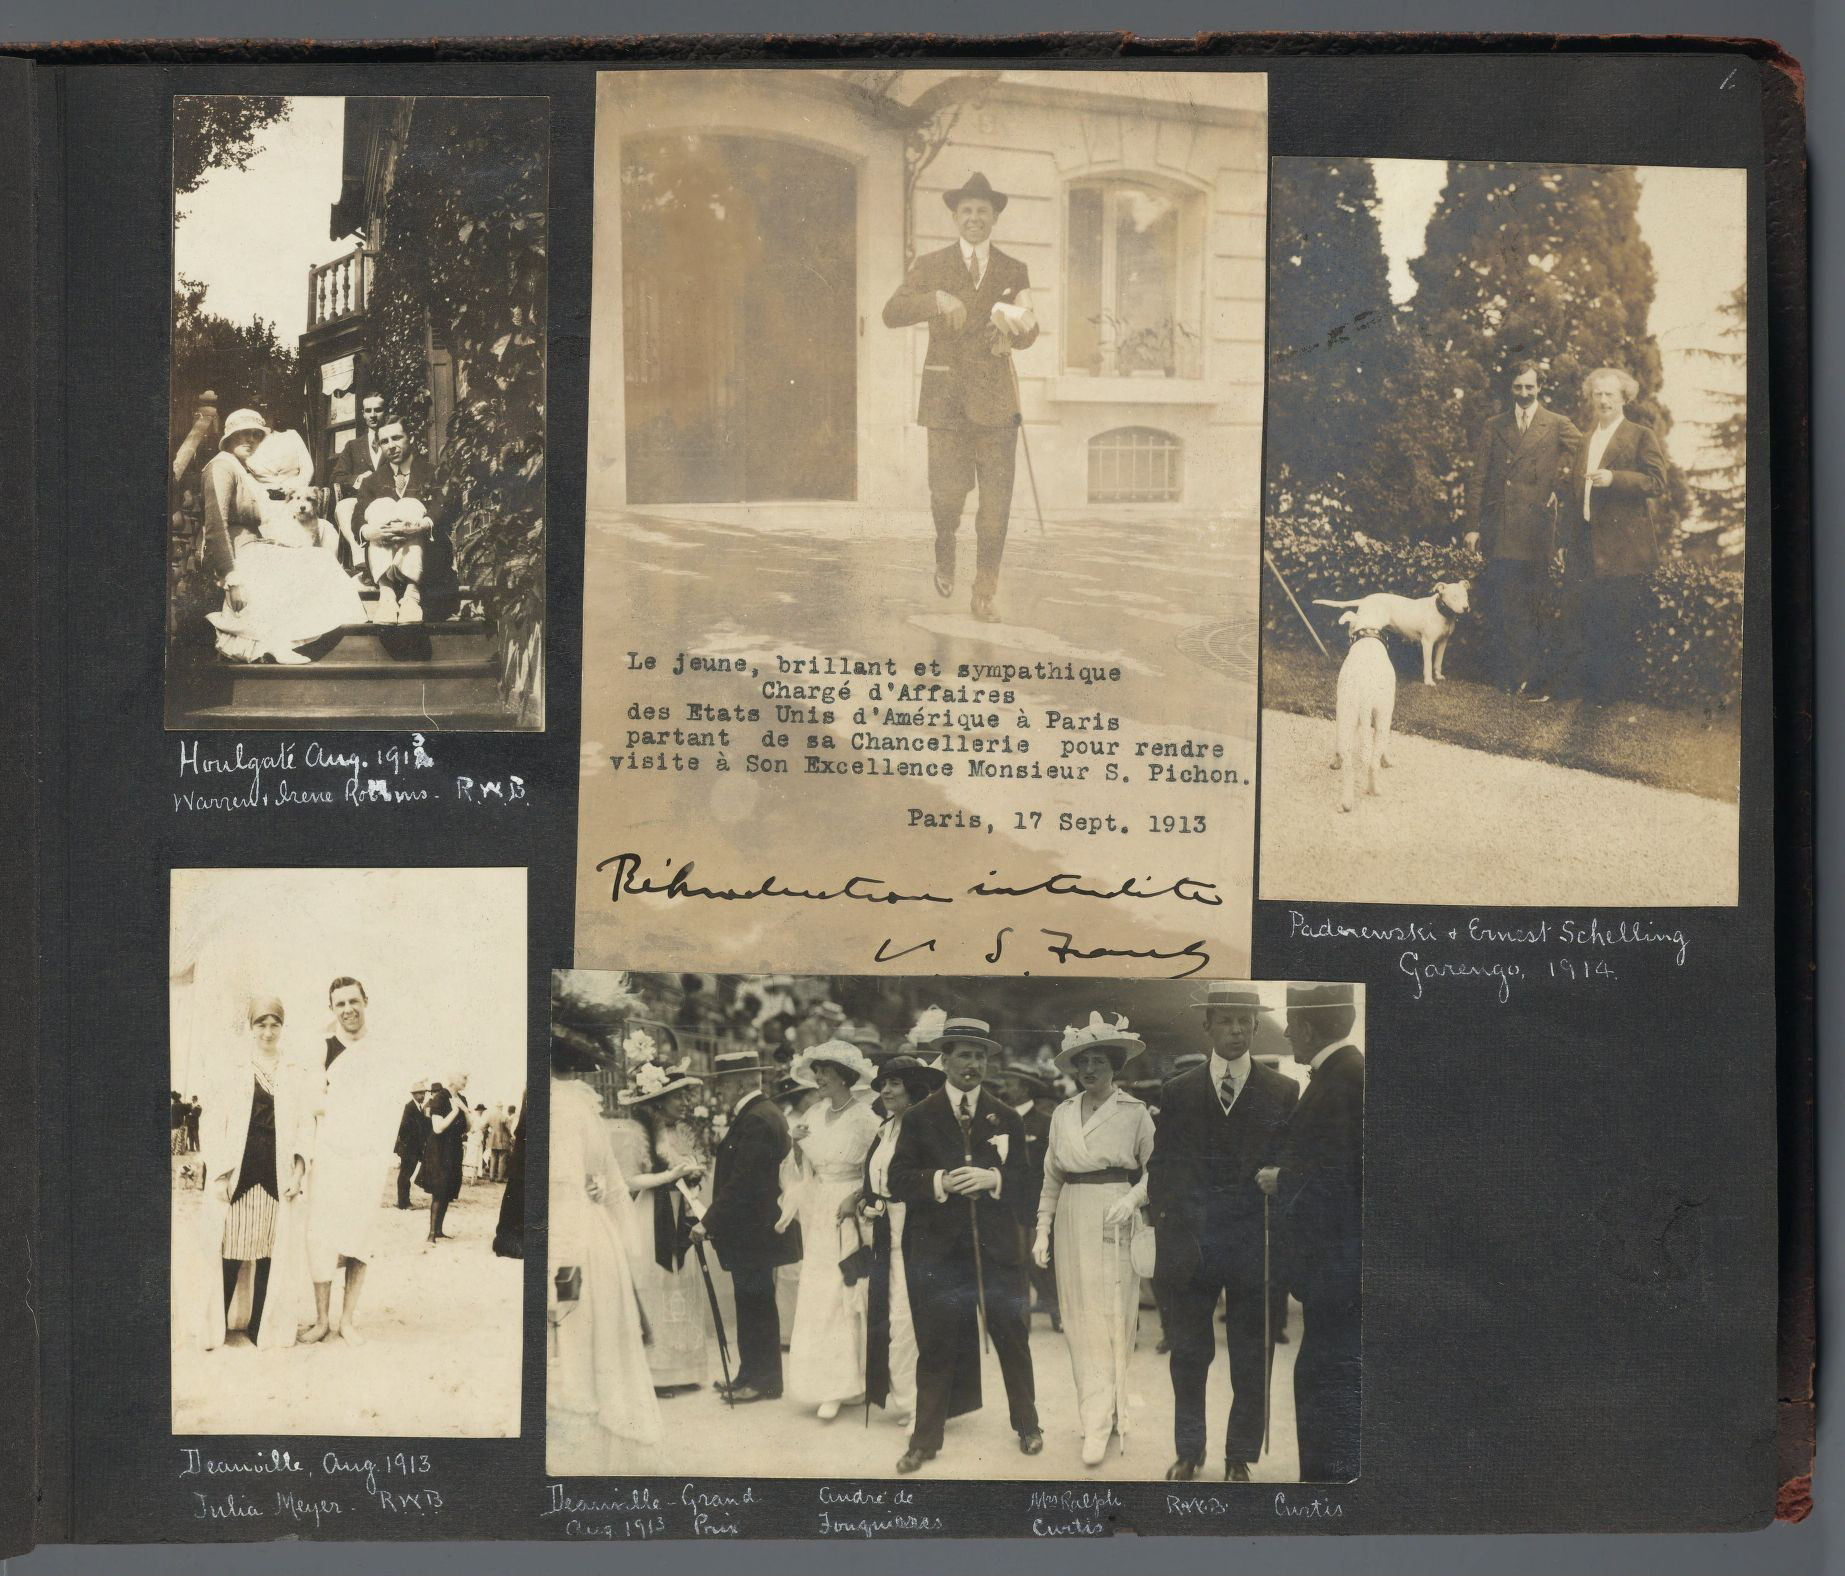 Robert Woods Bliss seen at various events, 1913.